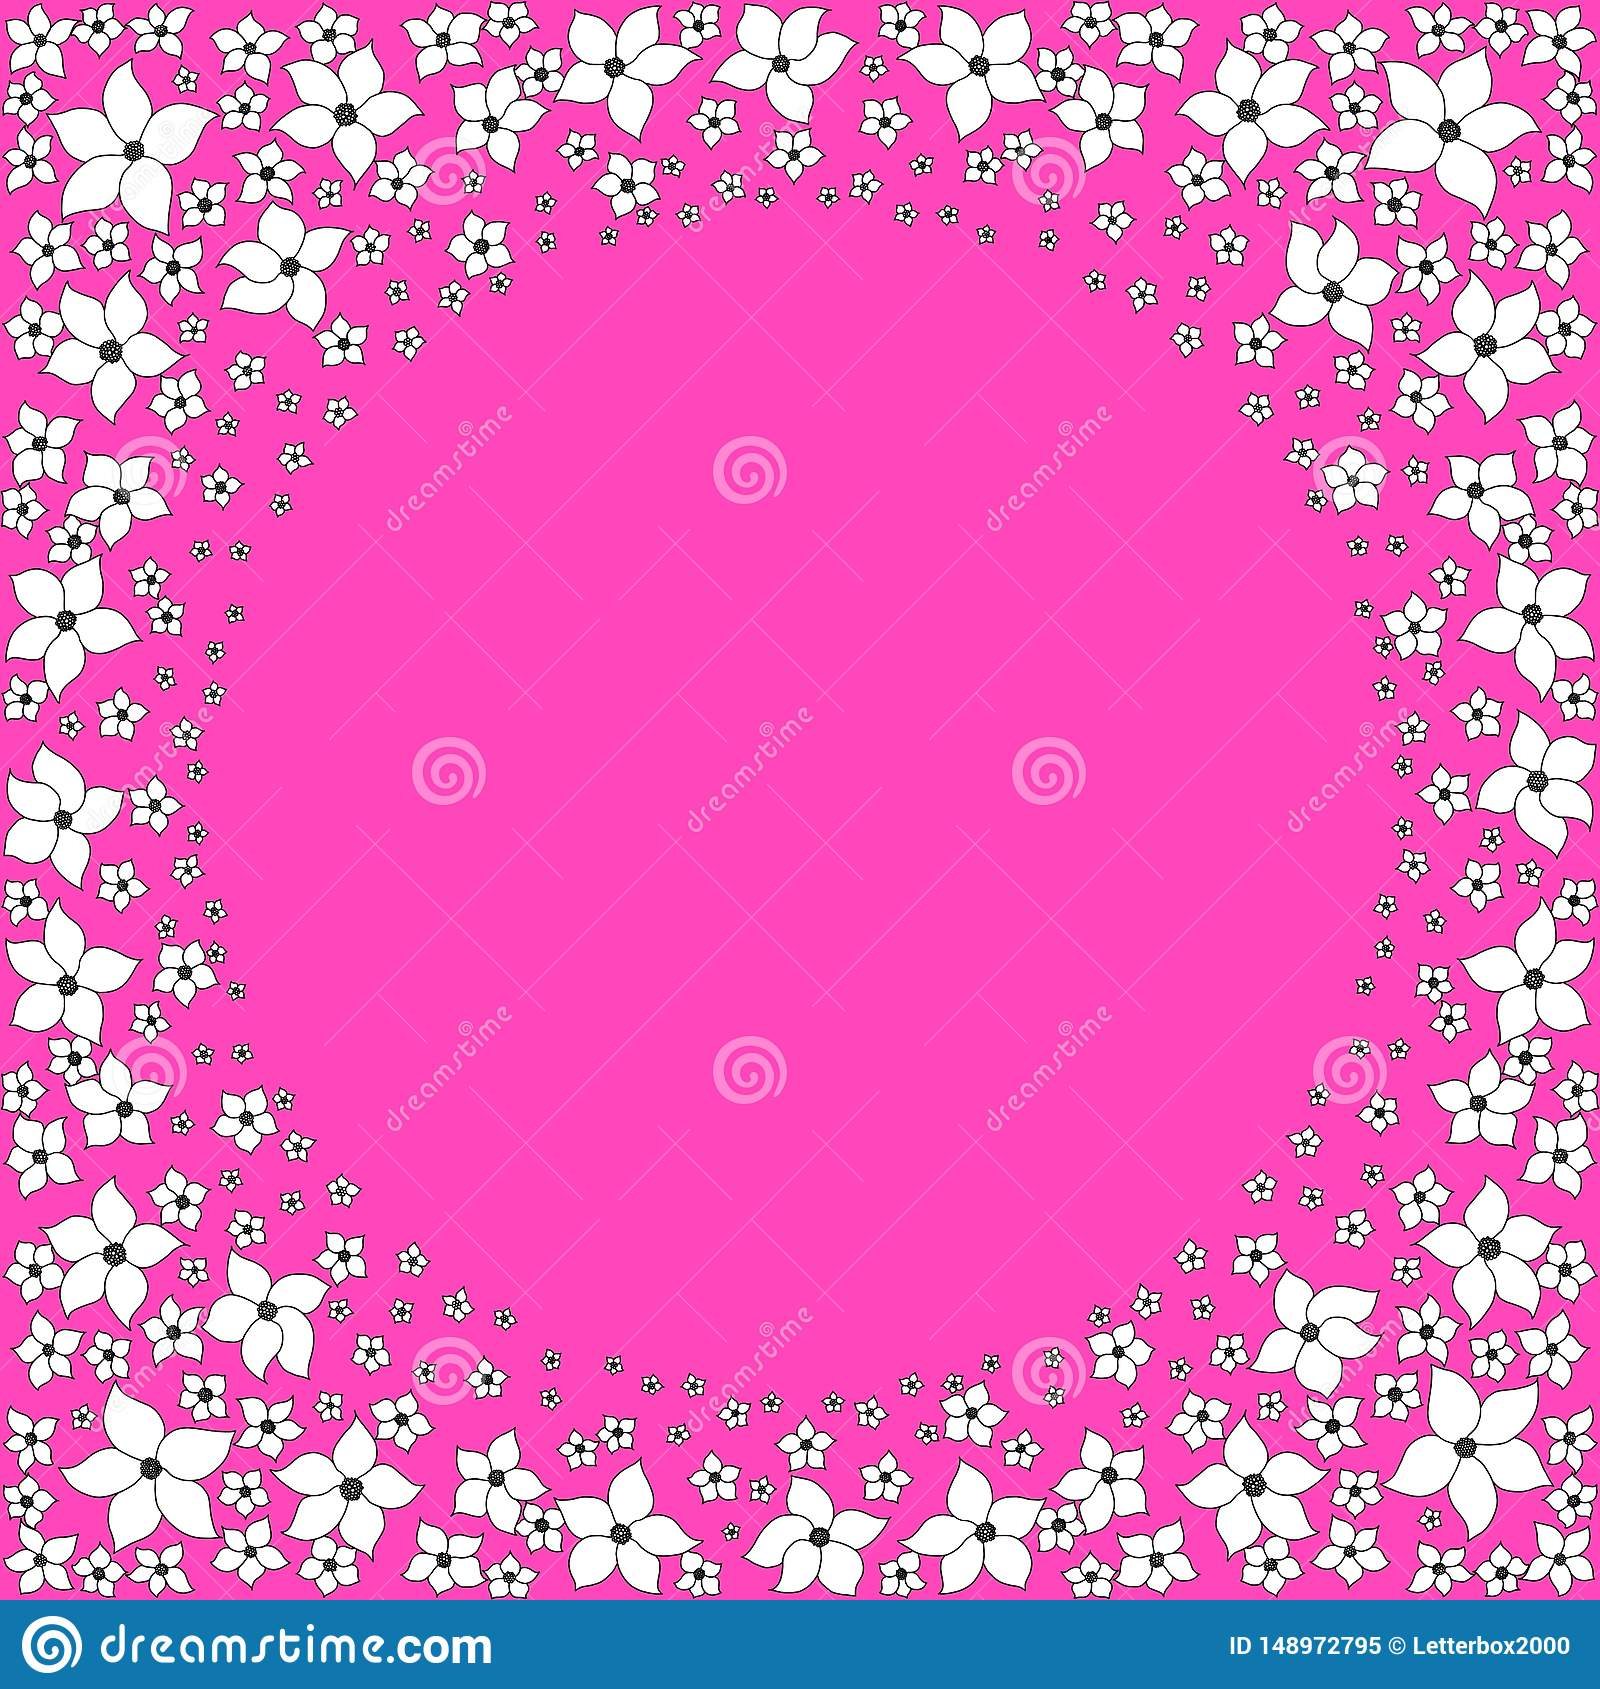 Round frame of white decorative flowers on a bright pink background.